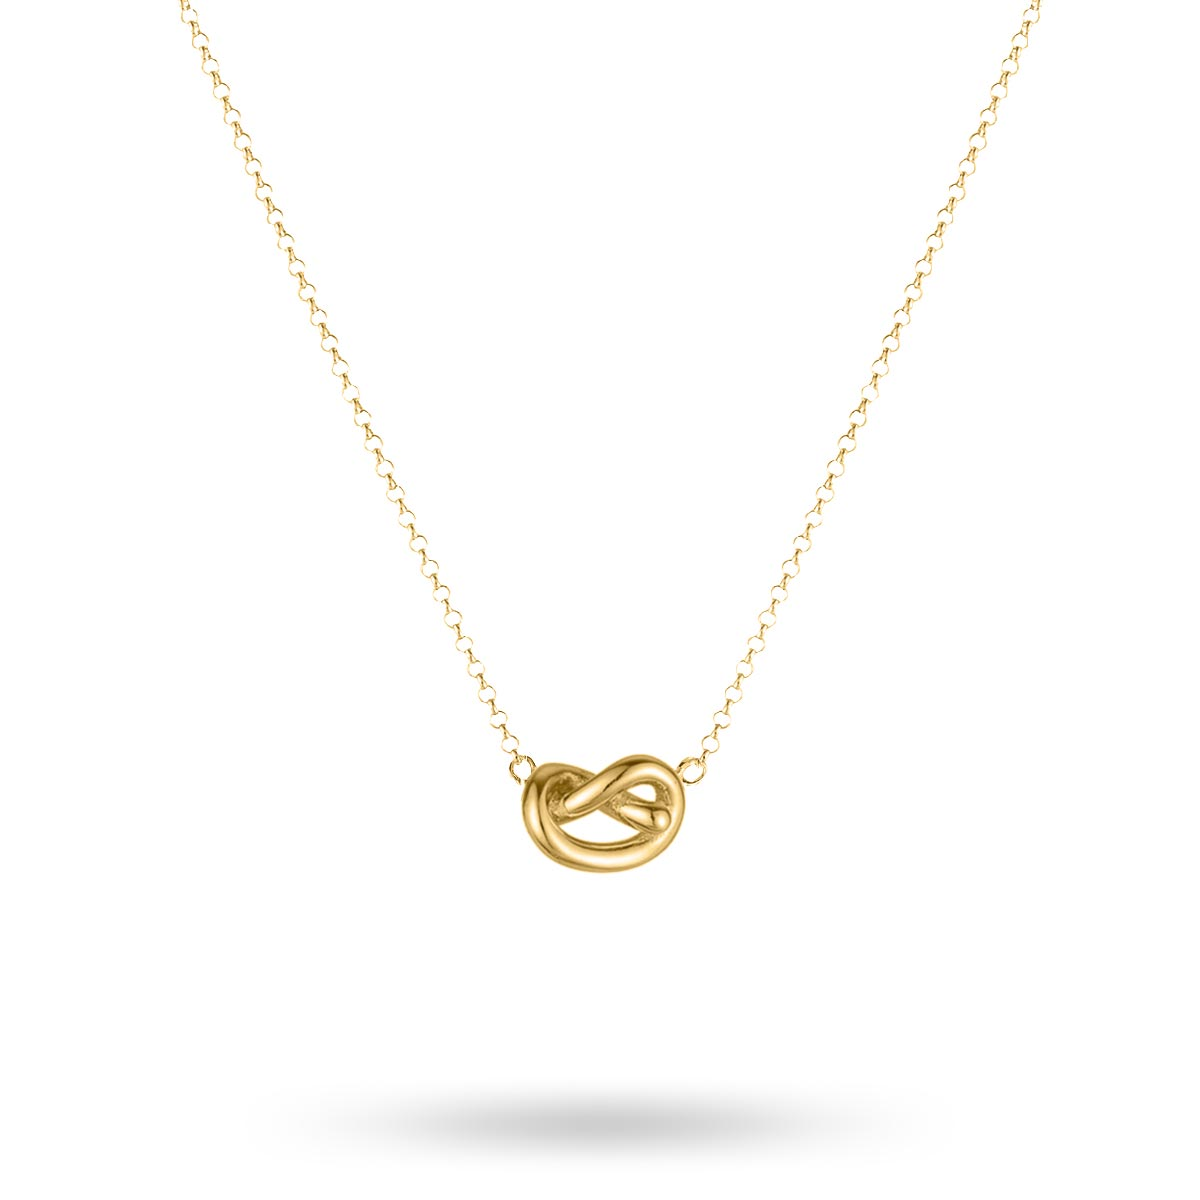 Sophie by Sophie – Knot halsband, guld